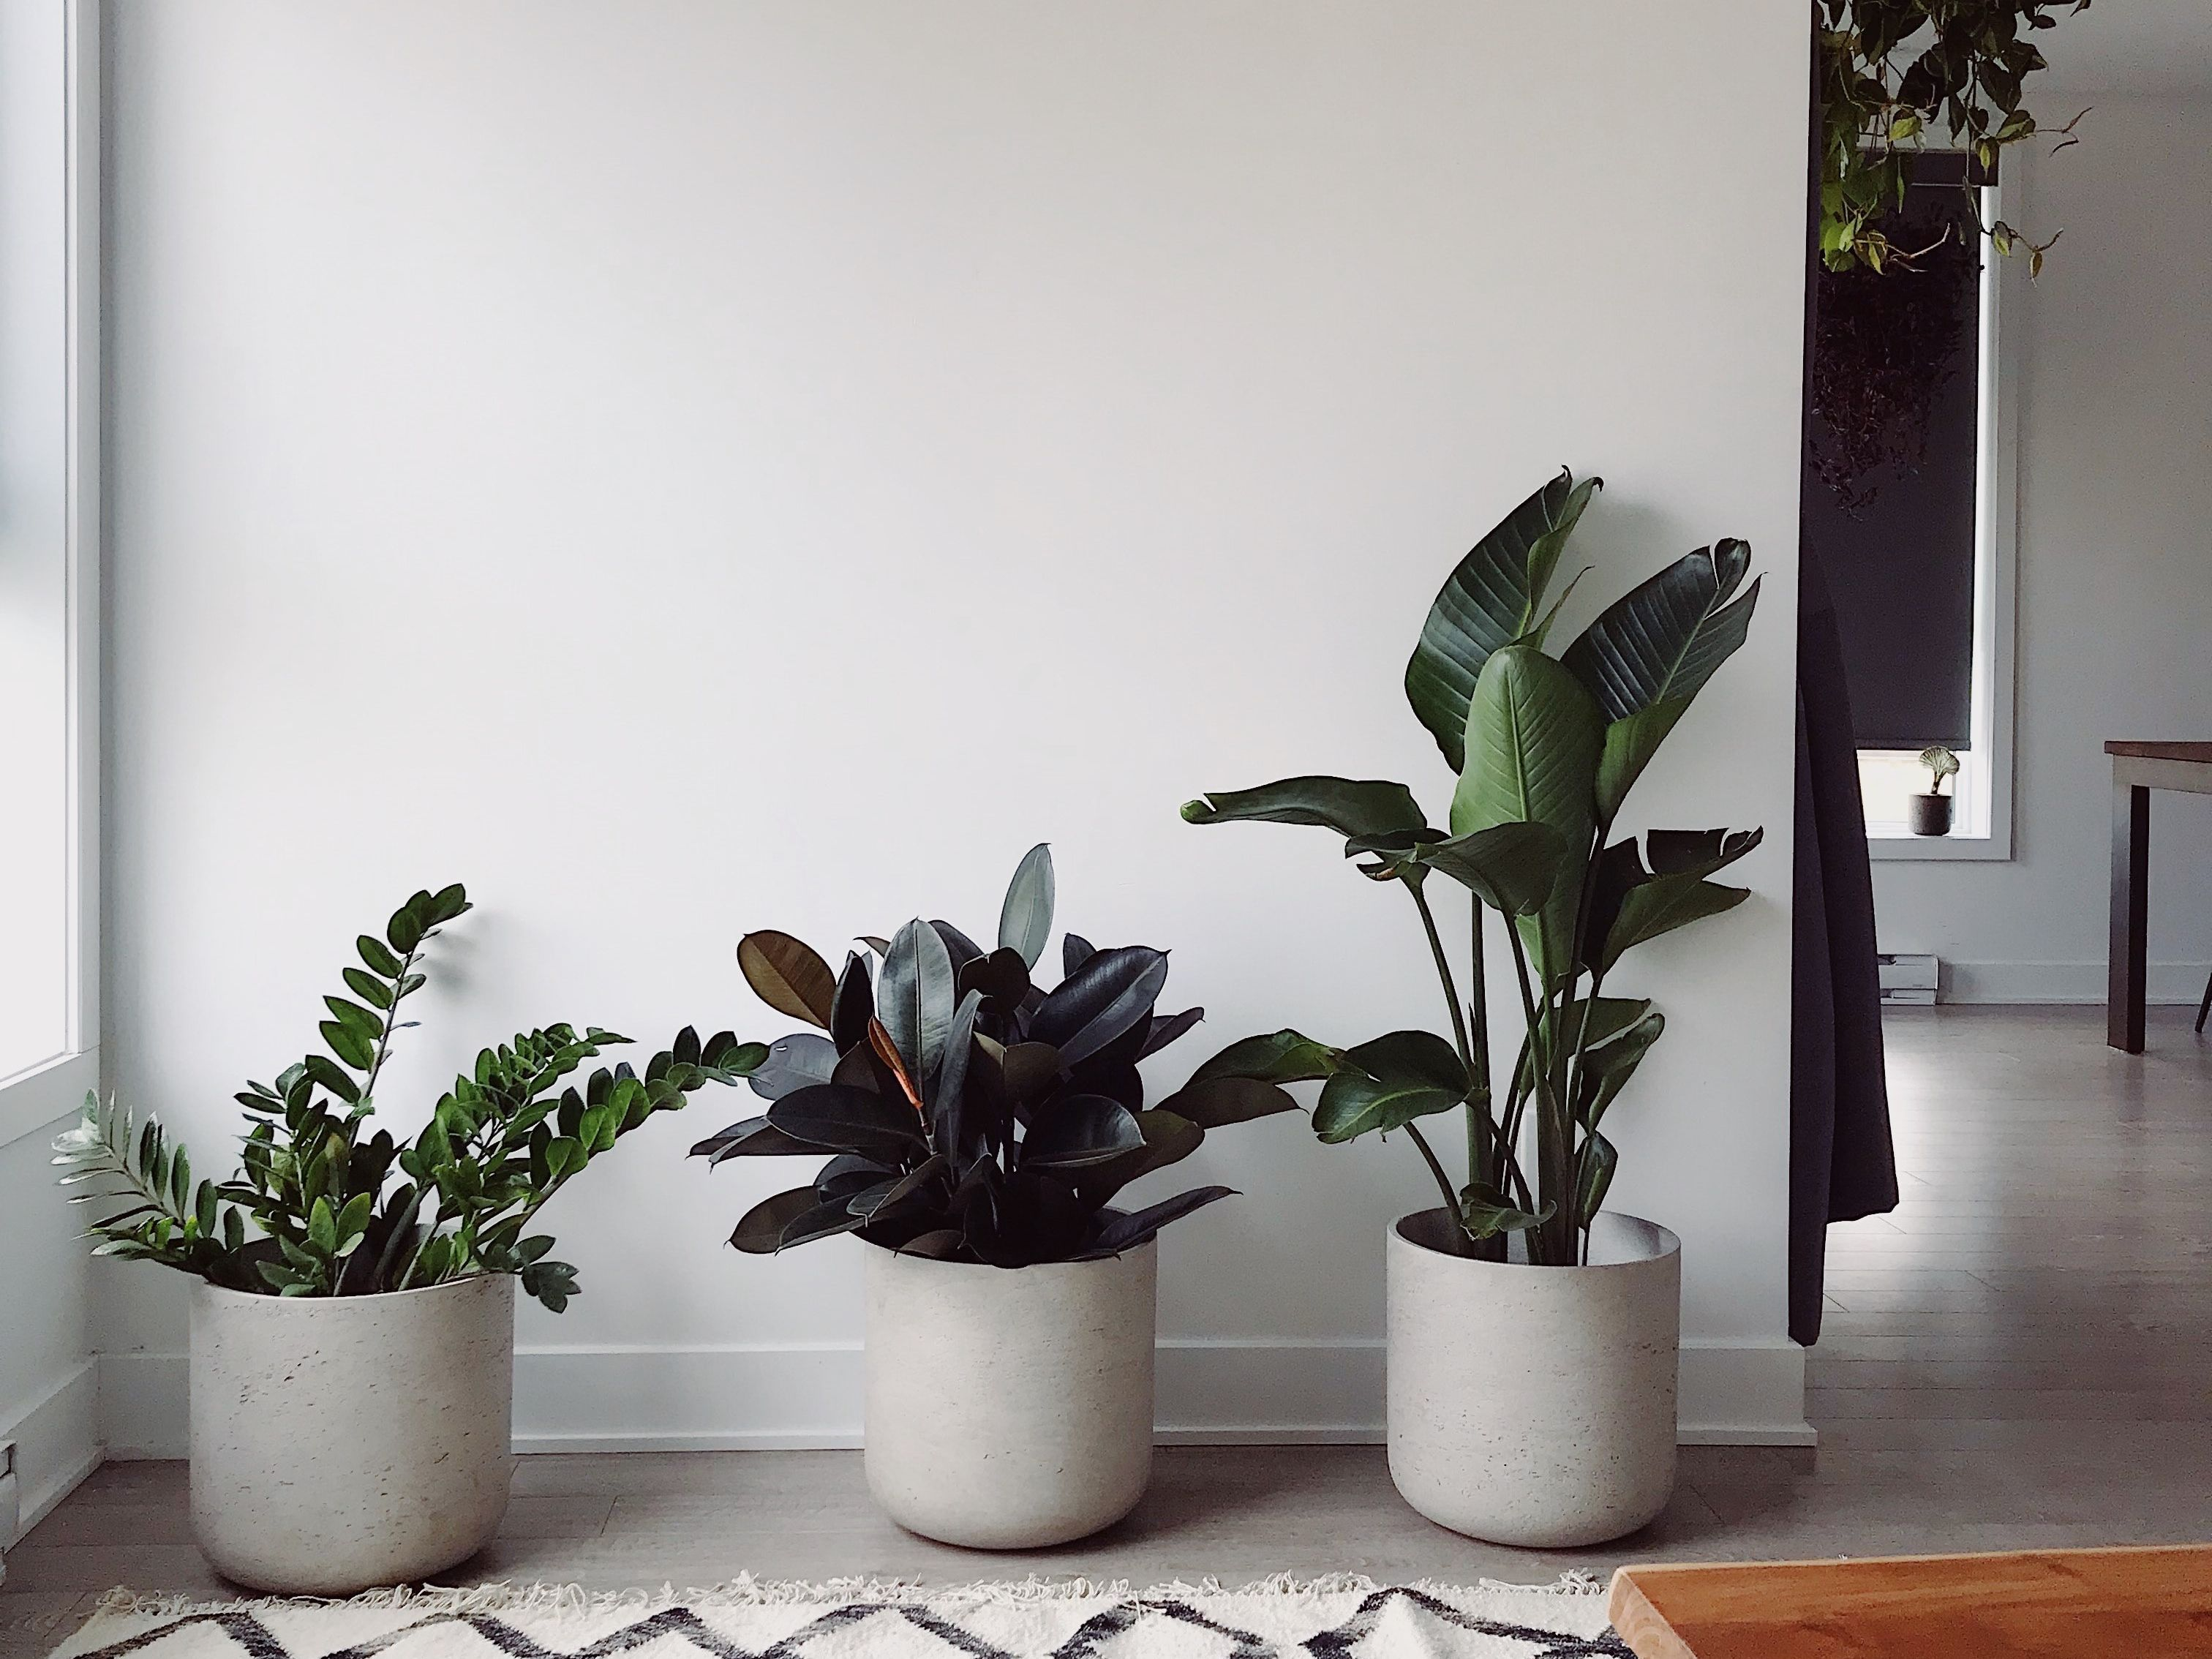 Sansevieria Plant Feng Shui air-purifying plants according to feng shui